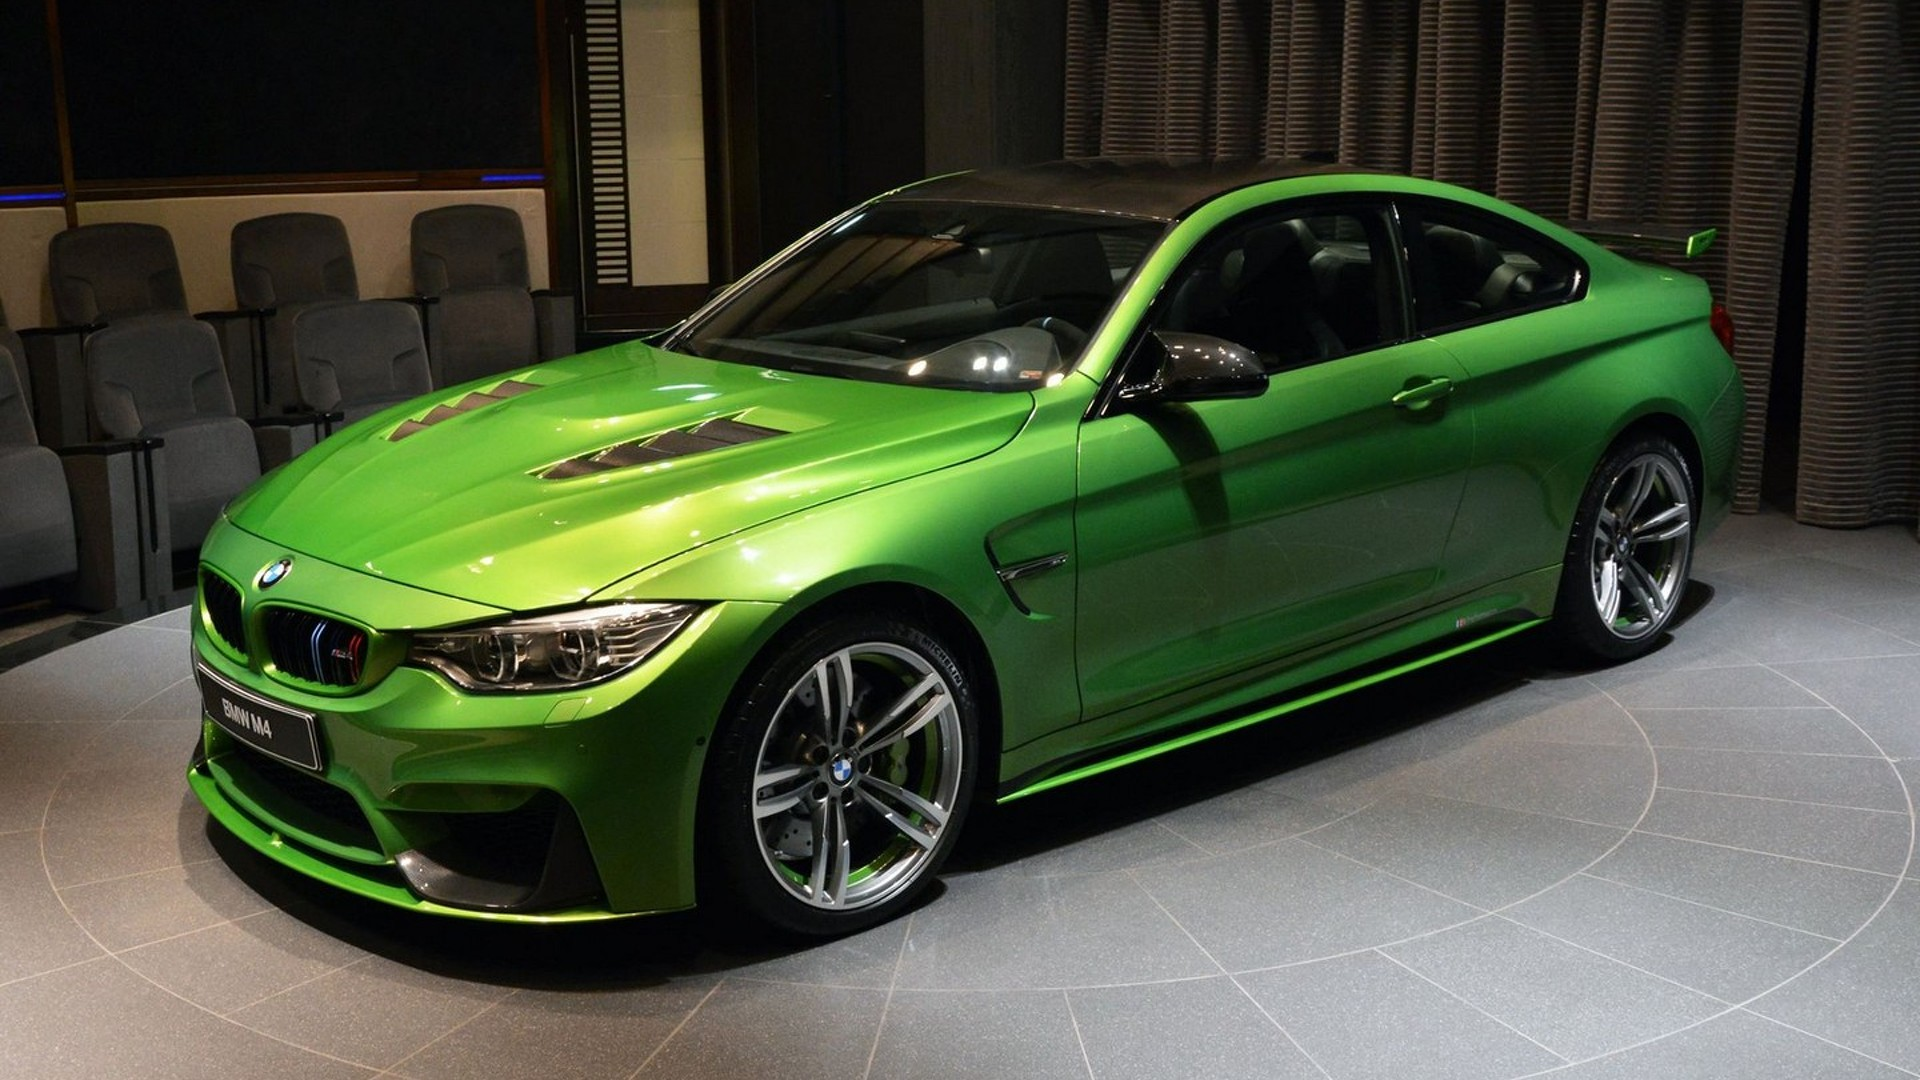 This BMW M4 Java Green is packed with extra goodies and more power